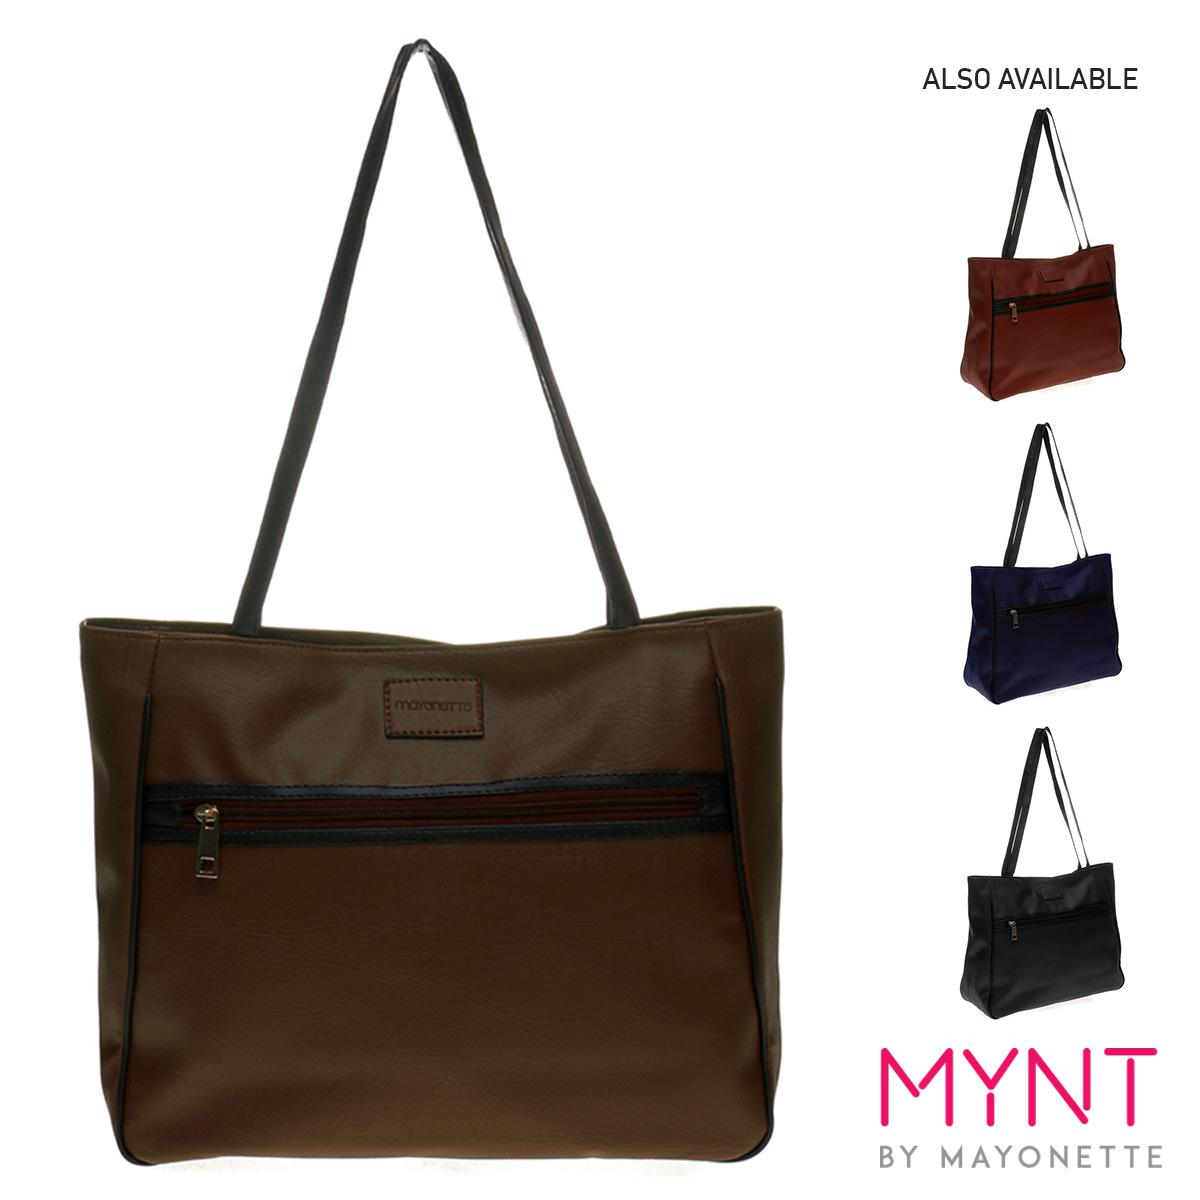 MYNT by Mayonette Tas Bahu Wanita Shoulder Bag Korean Style Daily Basic Wear Impor Quality Legato Totes (Coklat Tua)